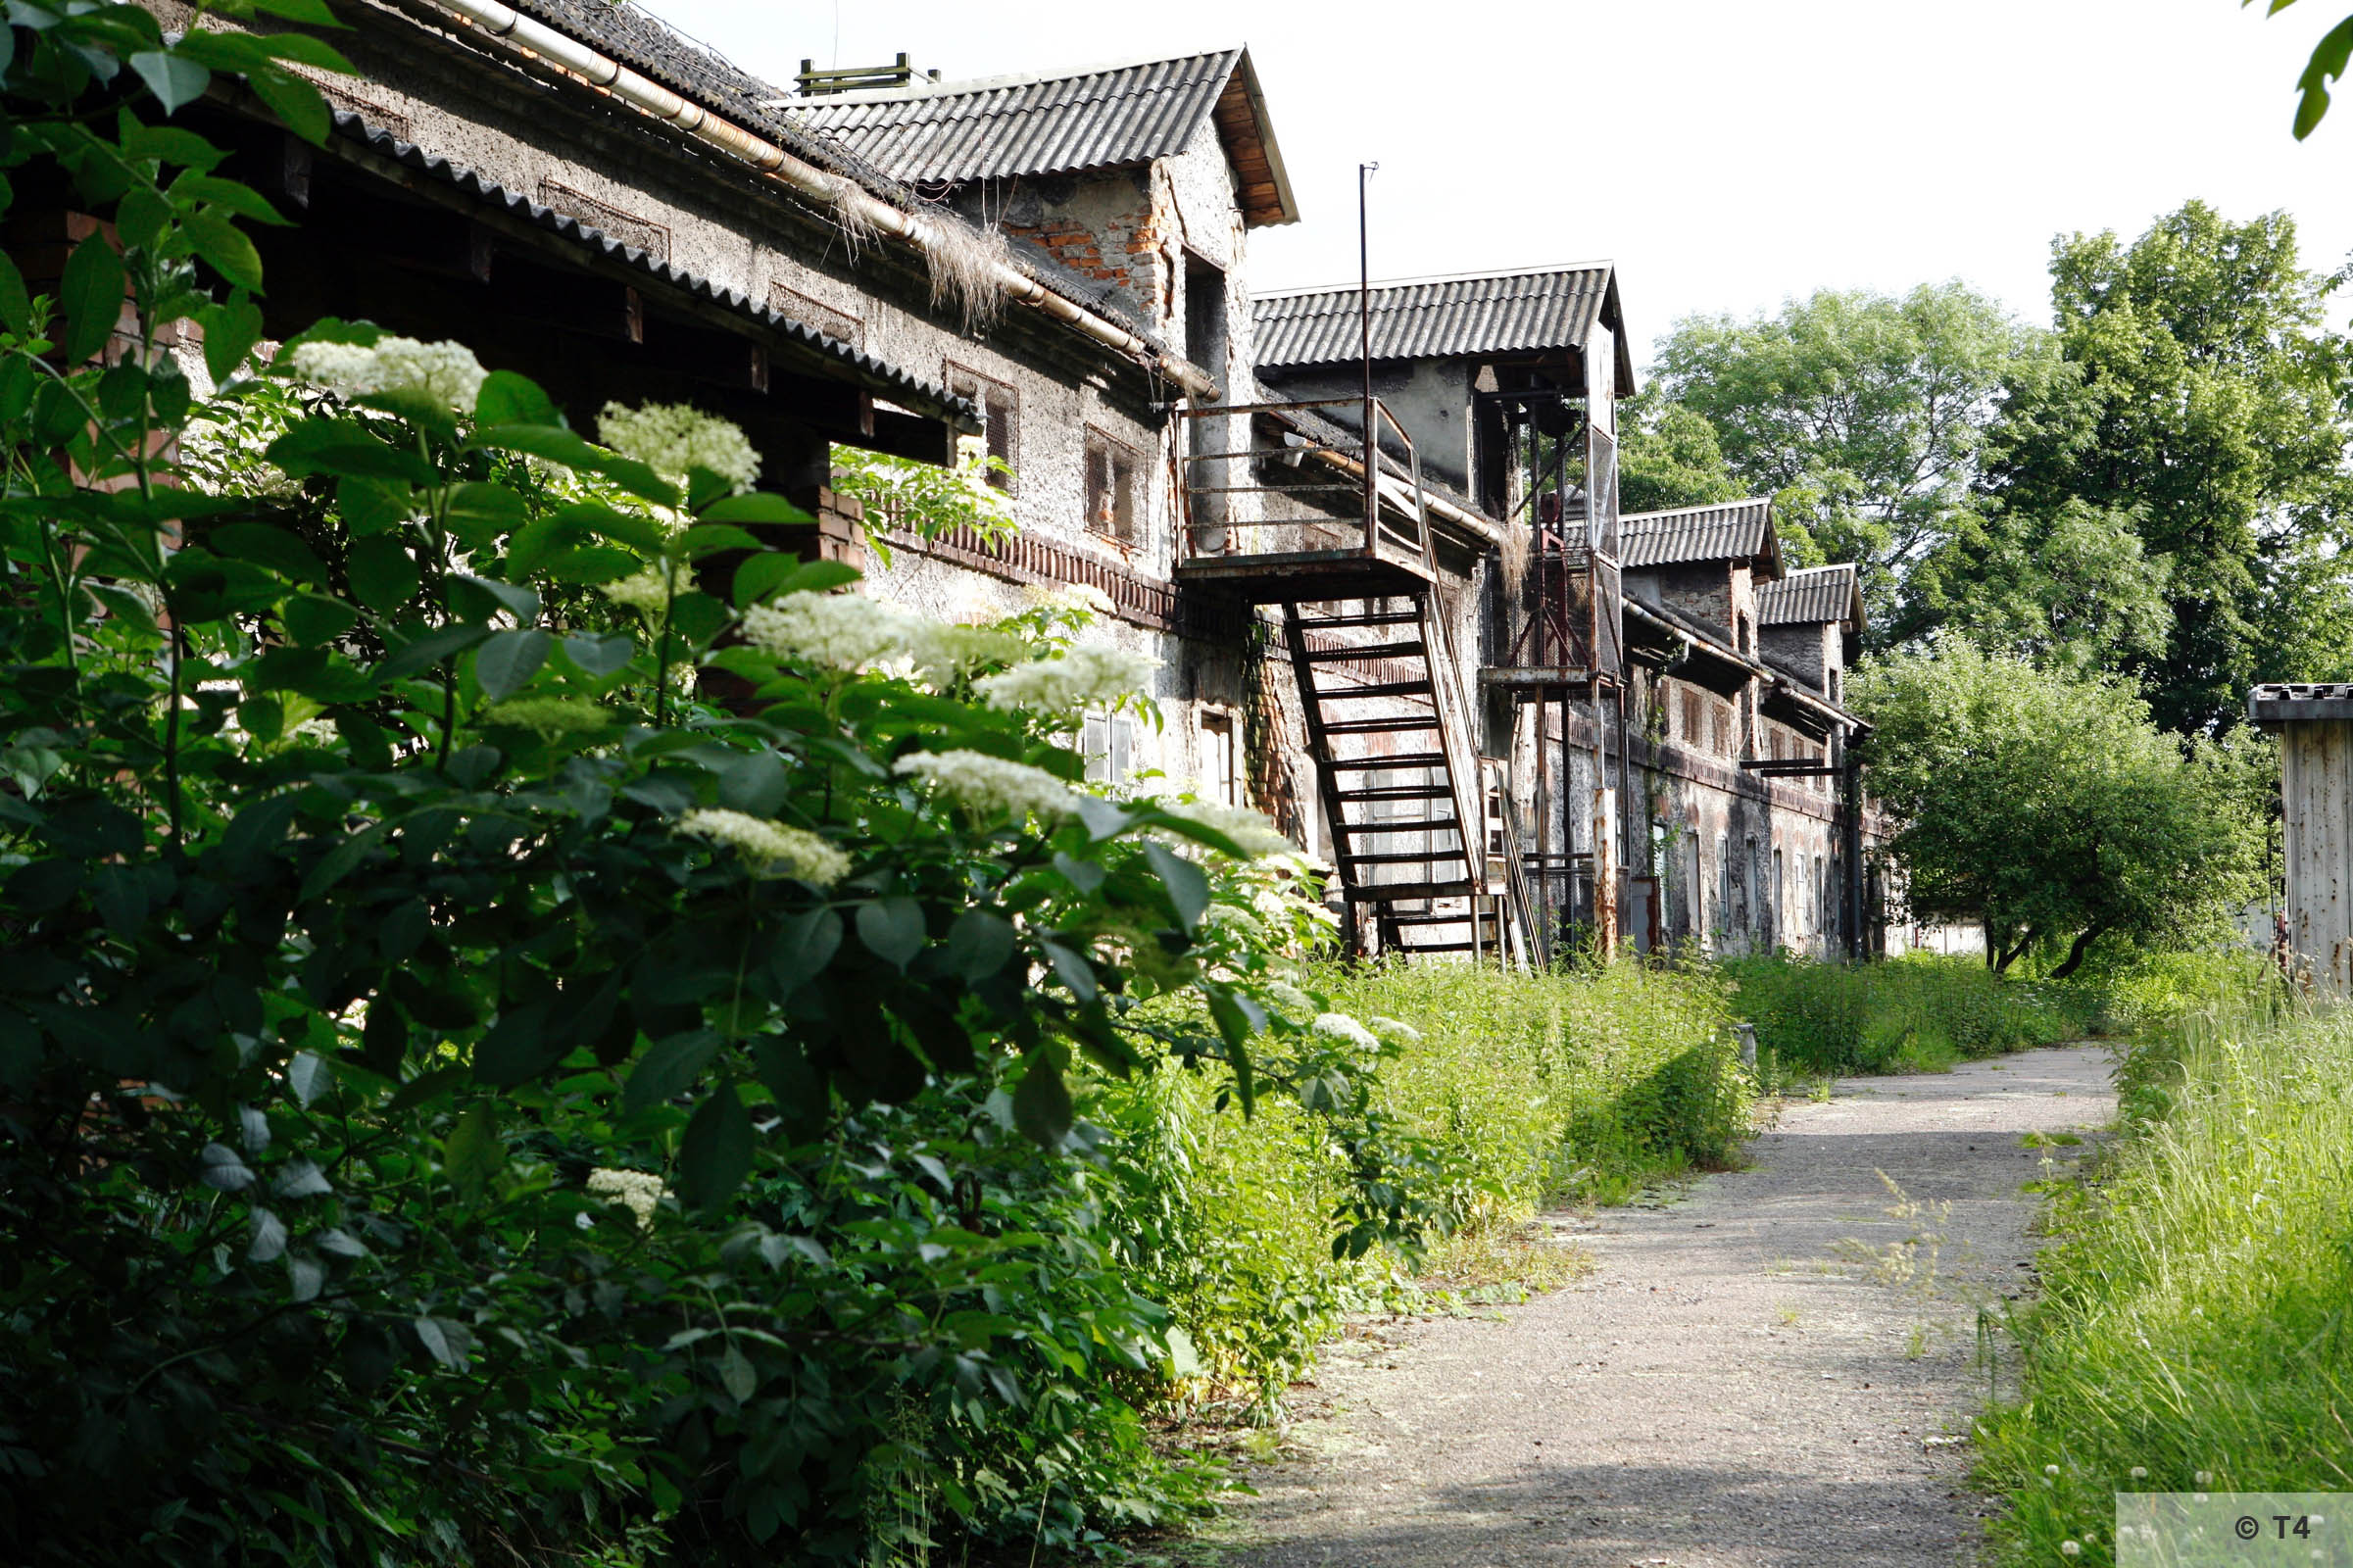 Stone stable building where prisoners lived inside the former sub camp. 2006 T4 6735